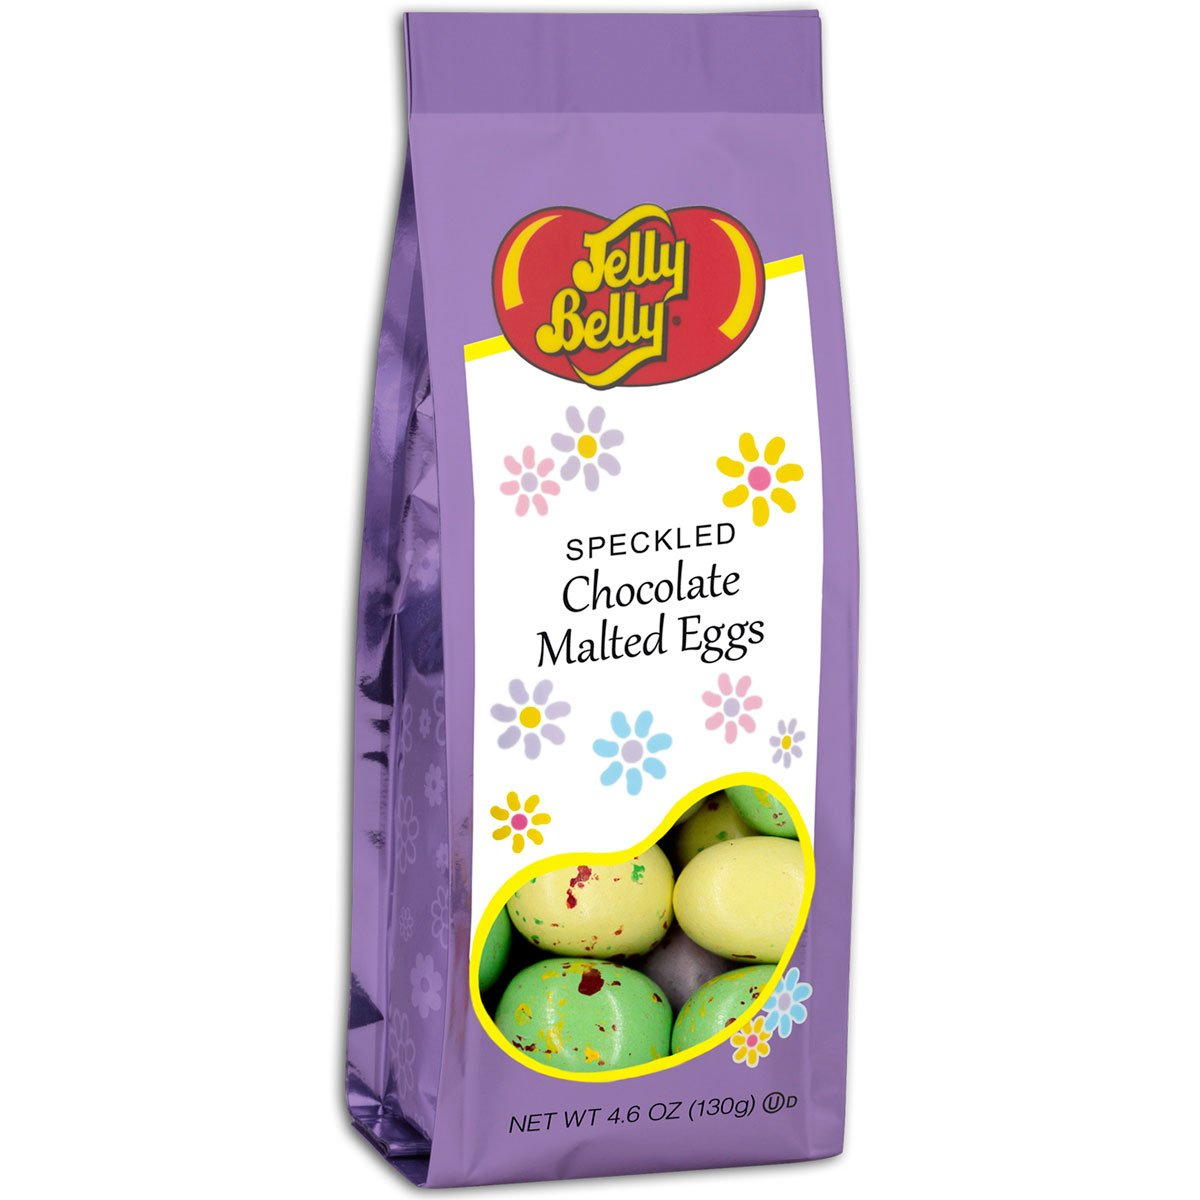 Speckled Chocolate Malted Eggs - 4.6 oz Gift Bag